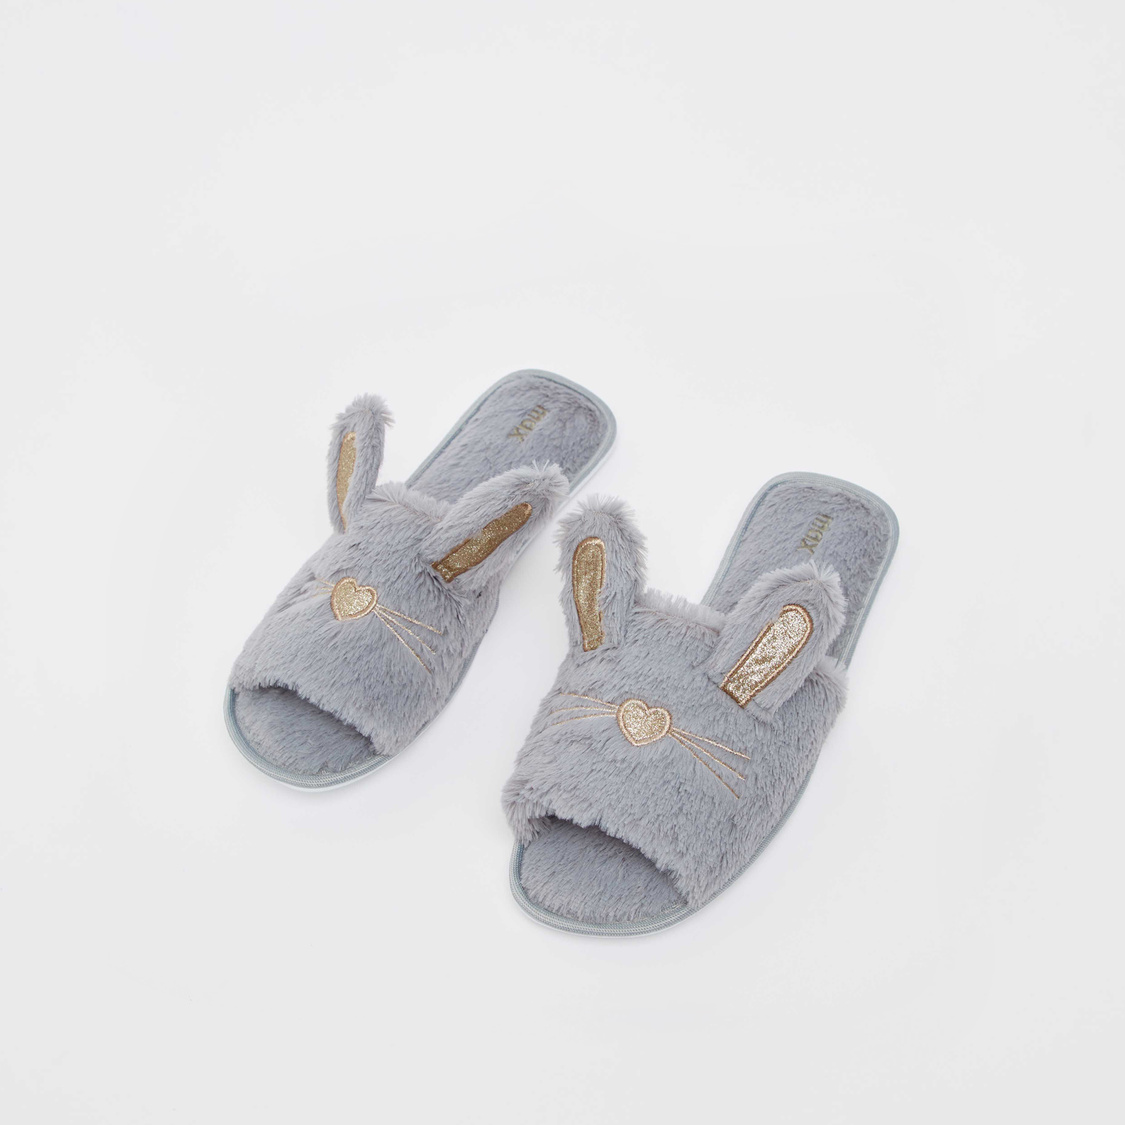 Plush Textured Bedroom Slippers with Bunny Ear Appliques